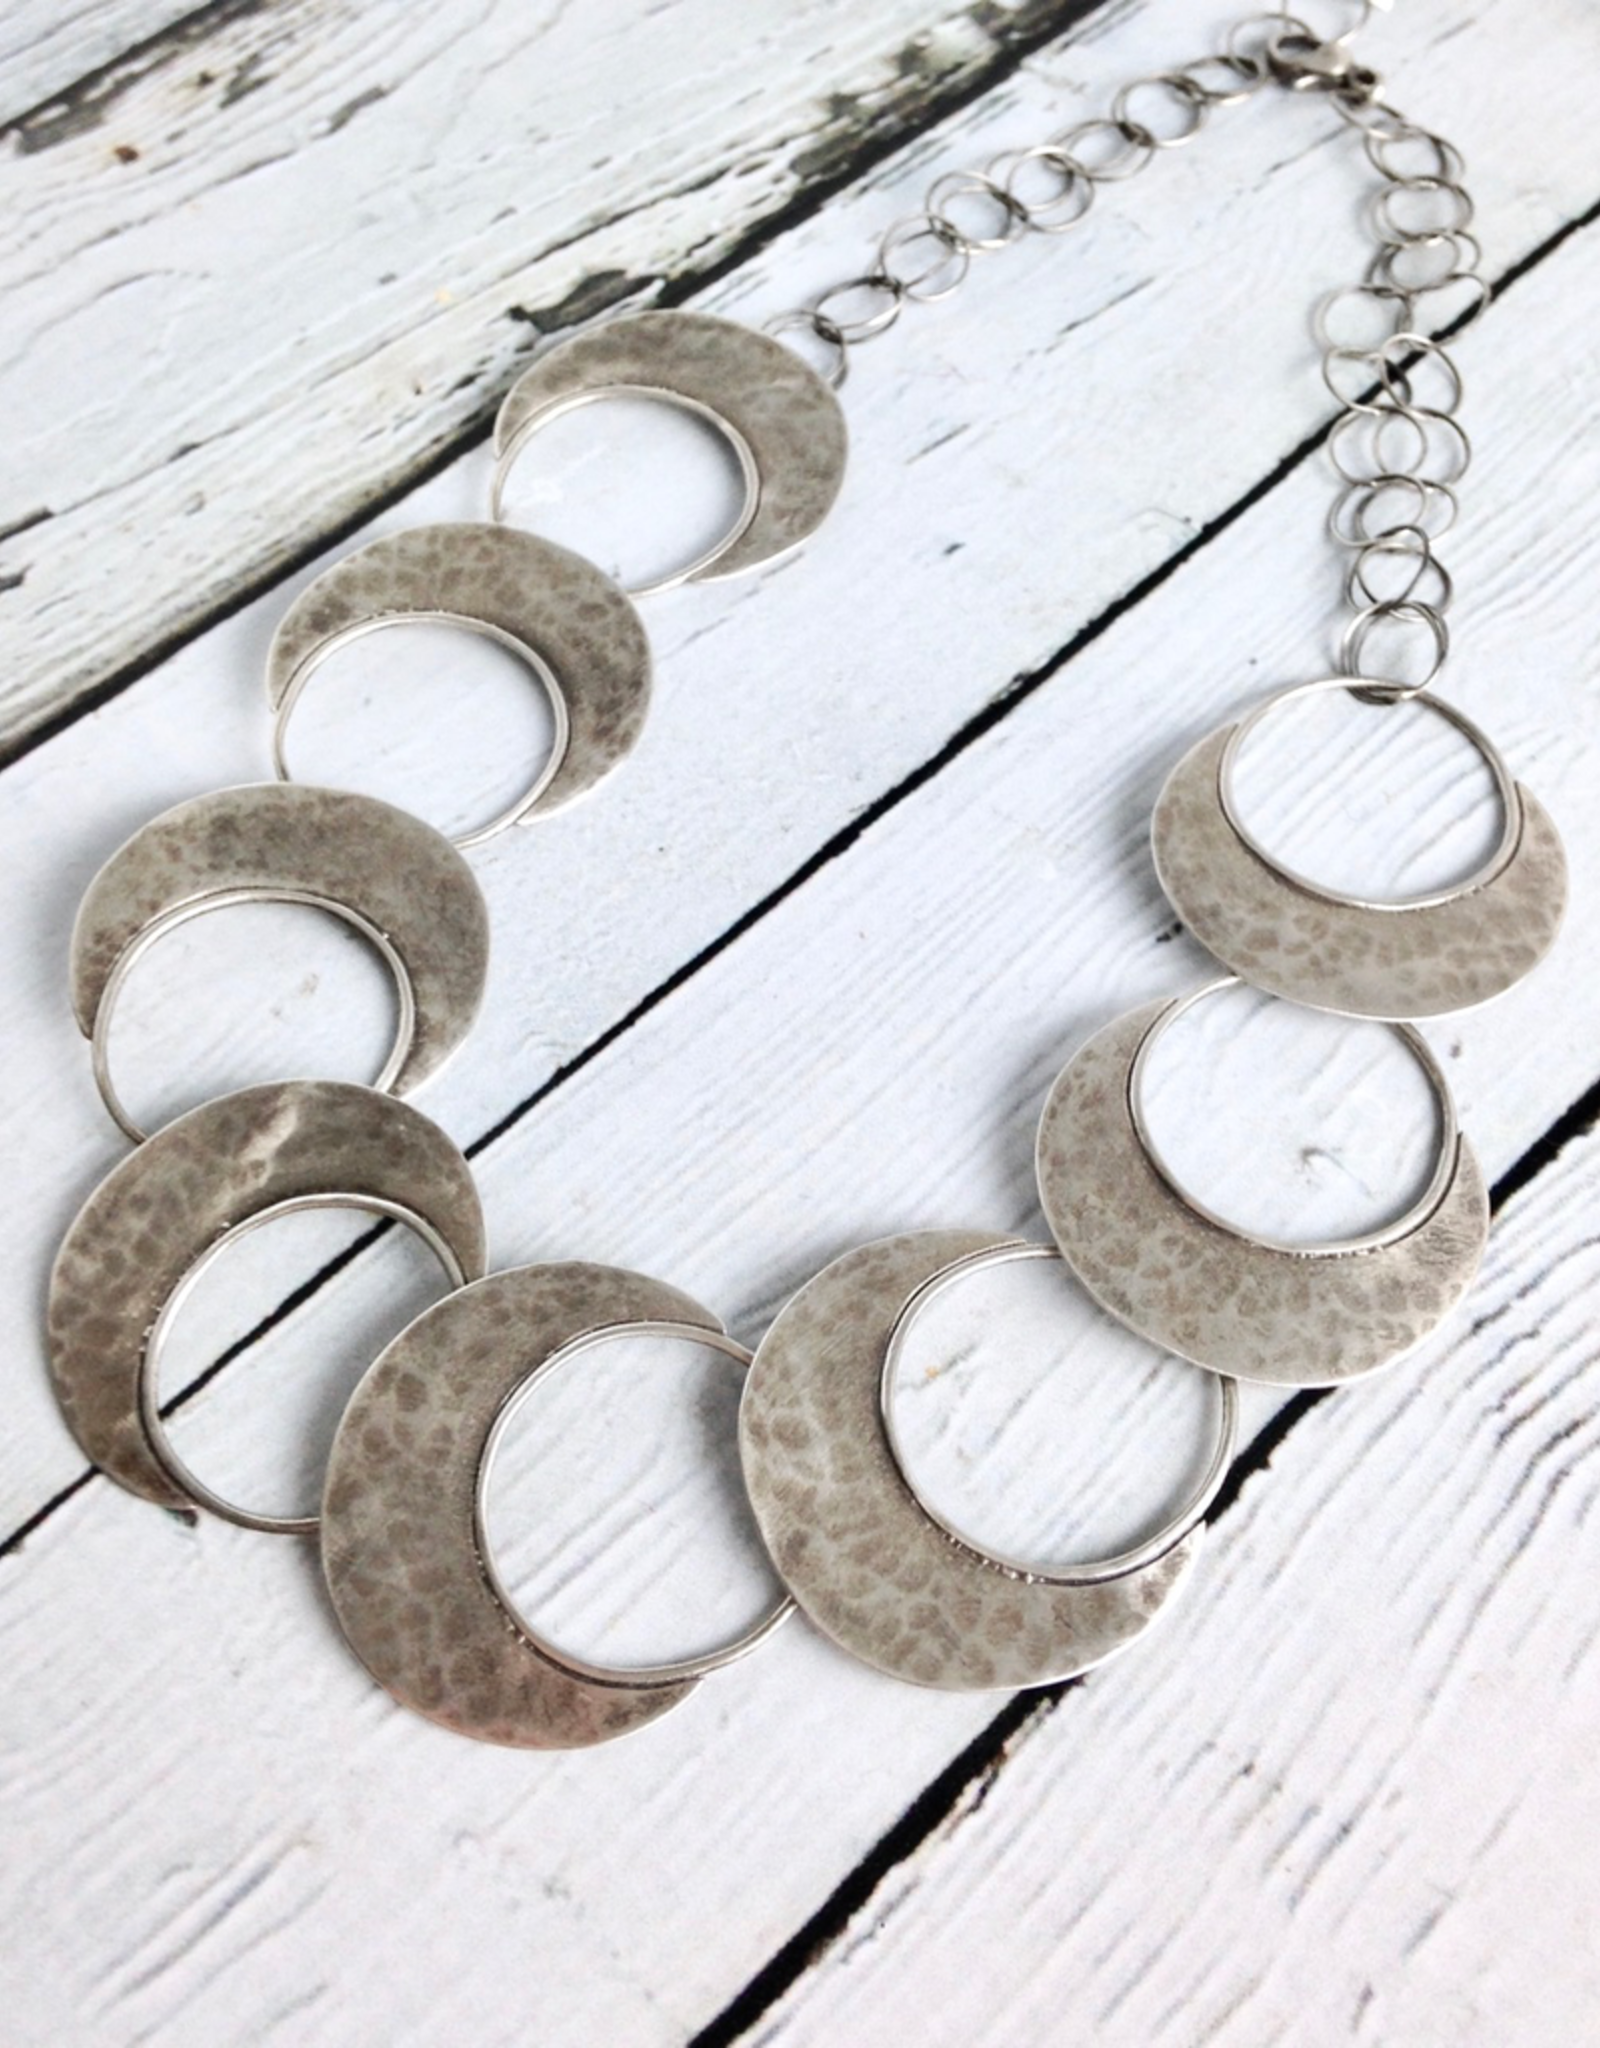 Handmade Sterling Silver Oxidized and textured open circle with solid halfmoon links necklace by Julia Britell Designs